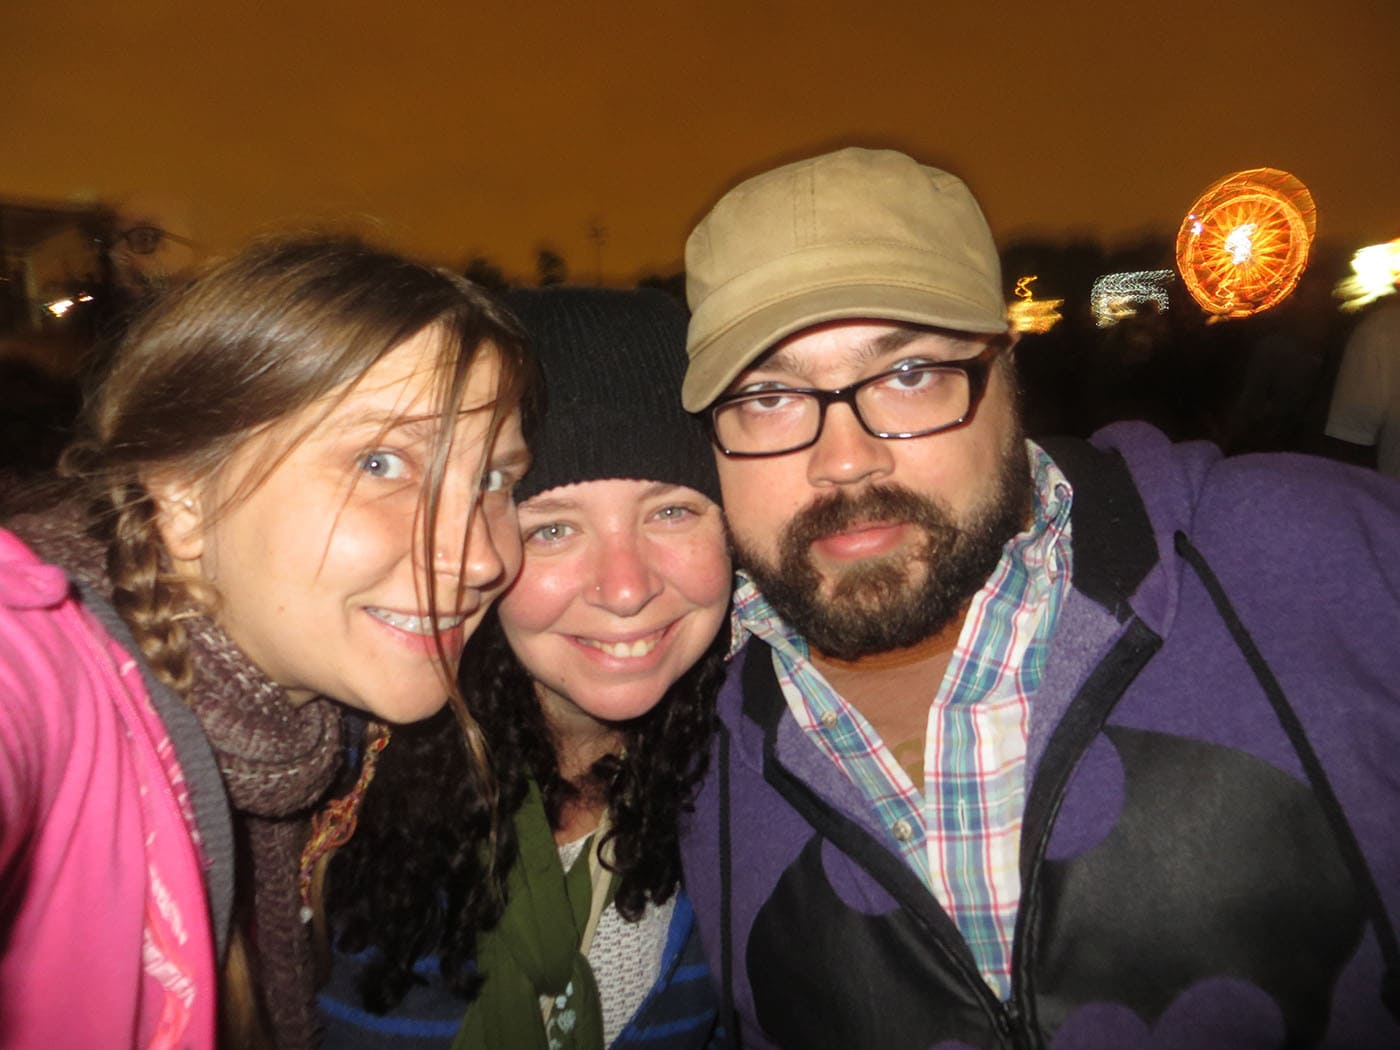 Heather, Jeremy, and me at Riot Fest Chicago 2013